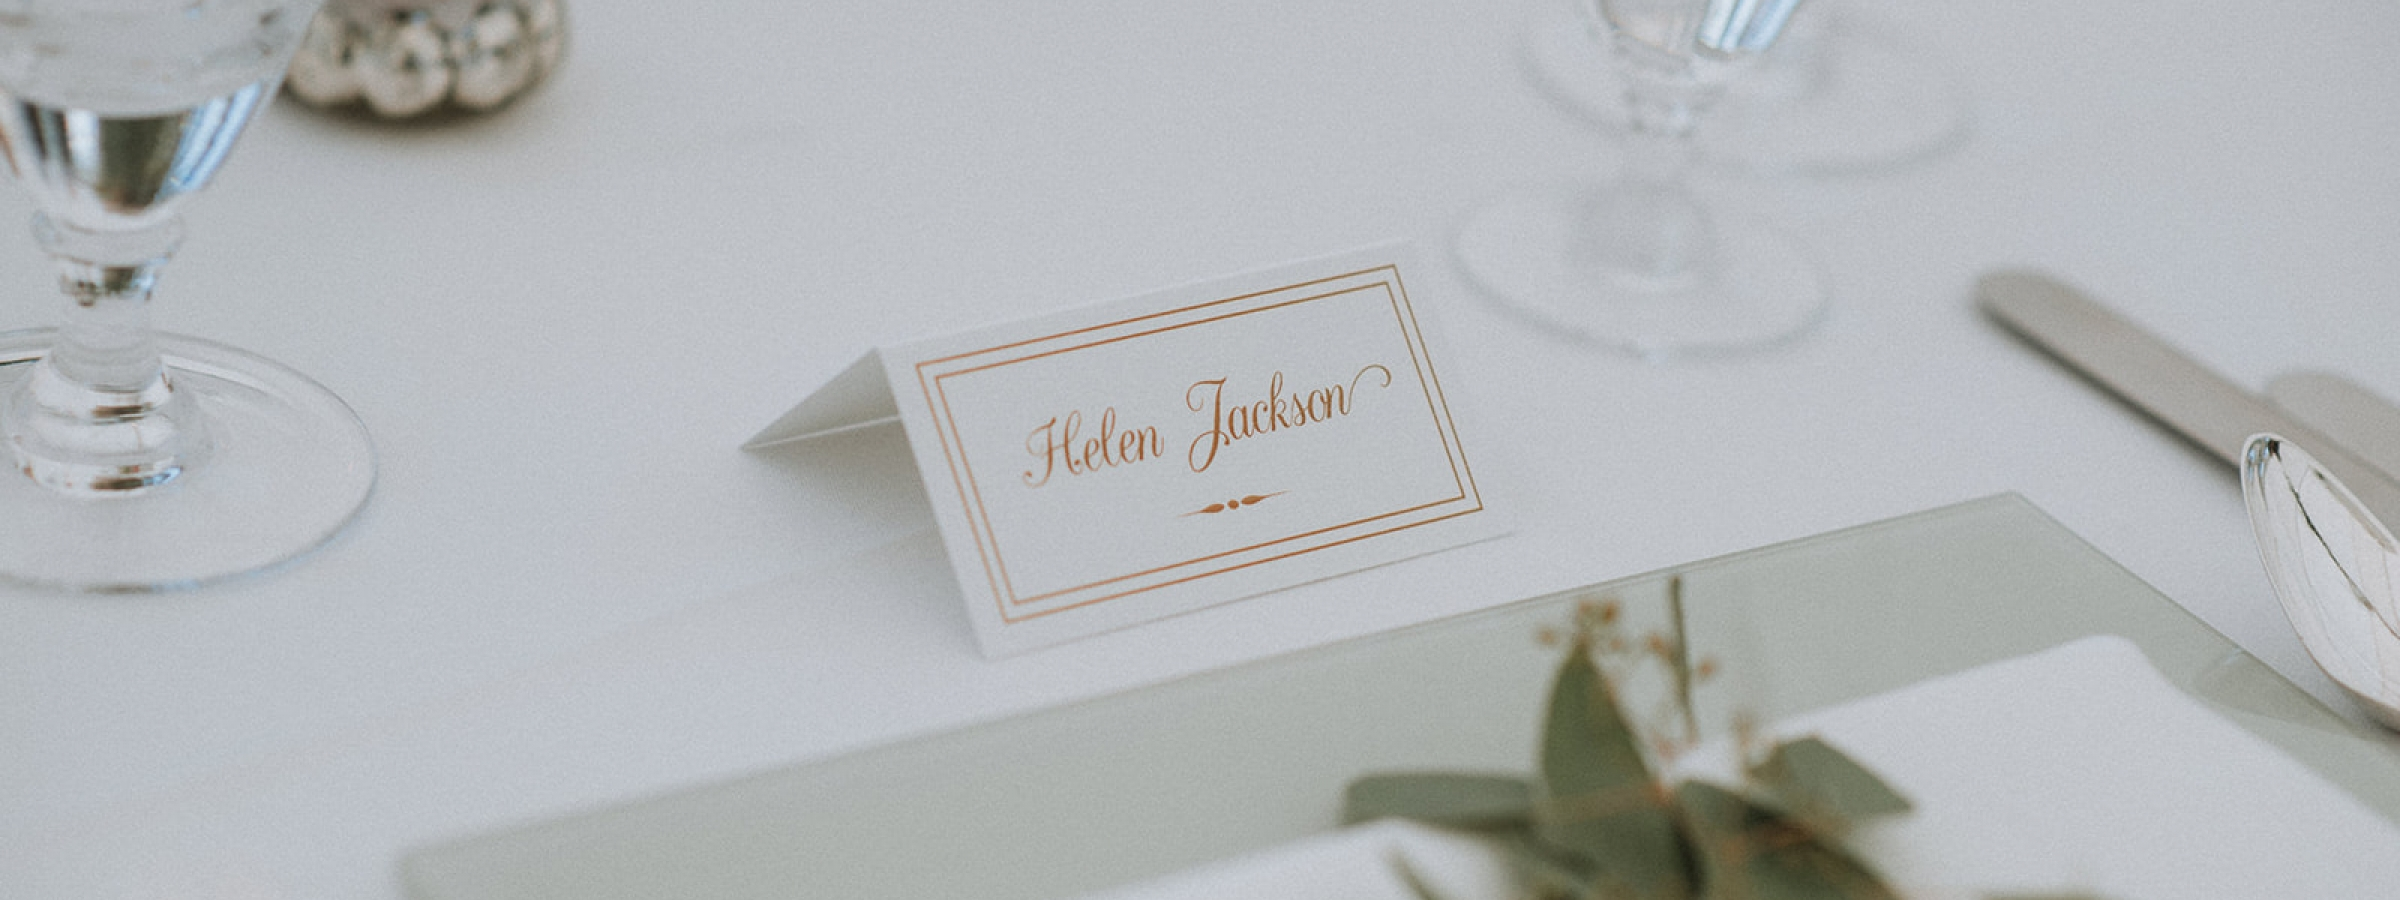 Classic place card - photo courtesy of Lusina Photography